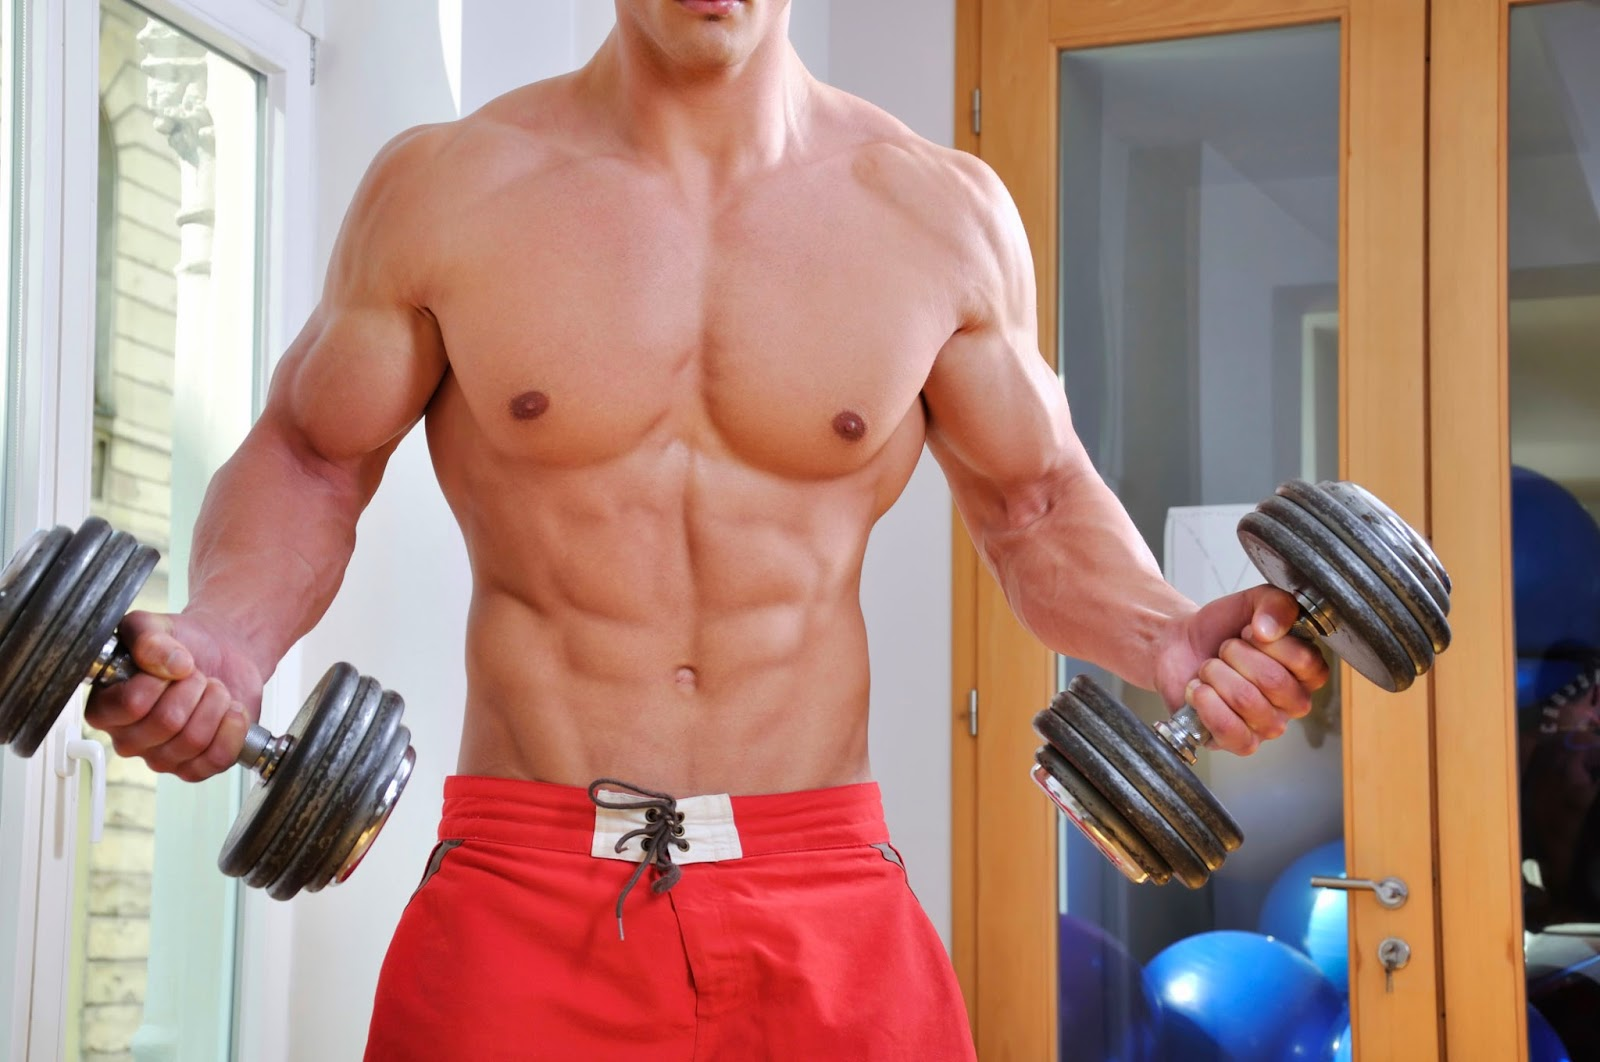 How to Gain Muscle Mass Fast - In 4 Easy Steps